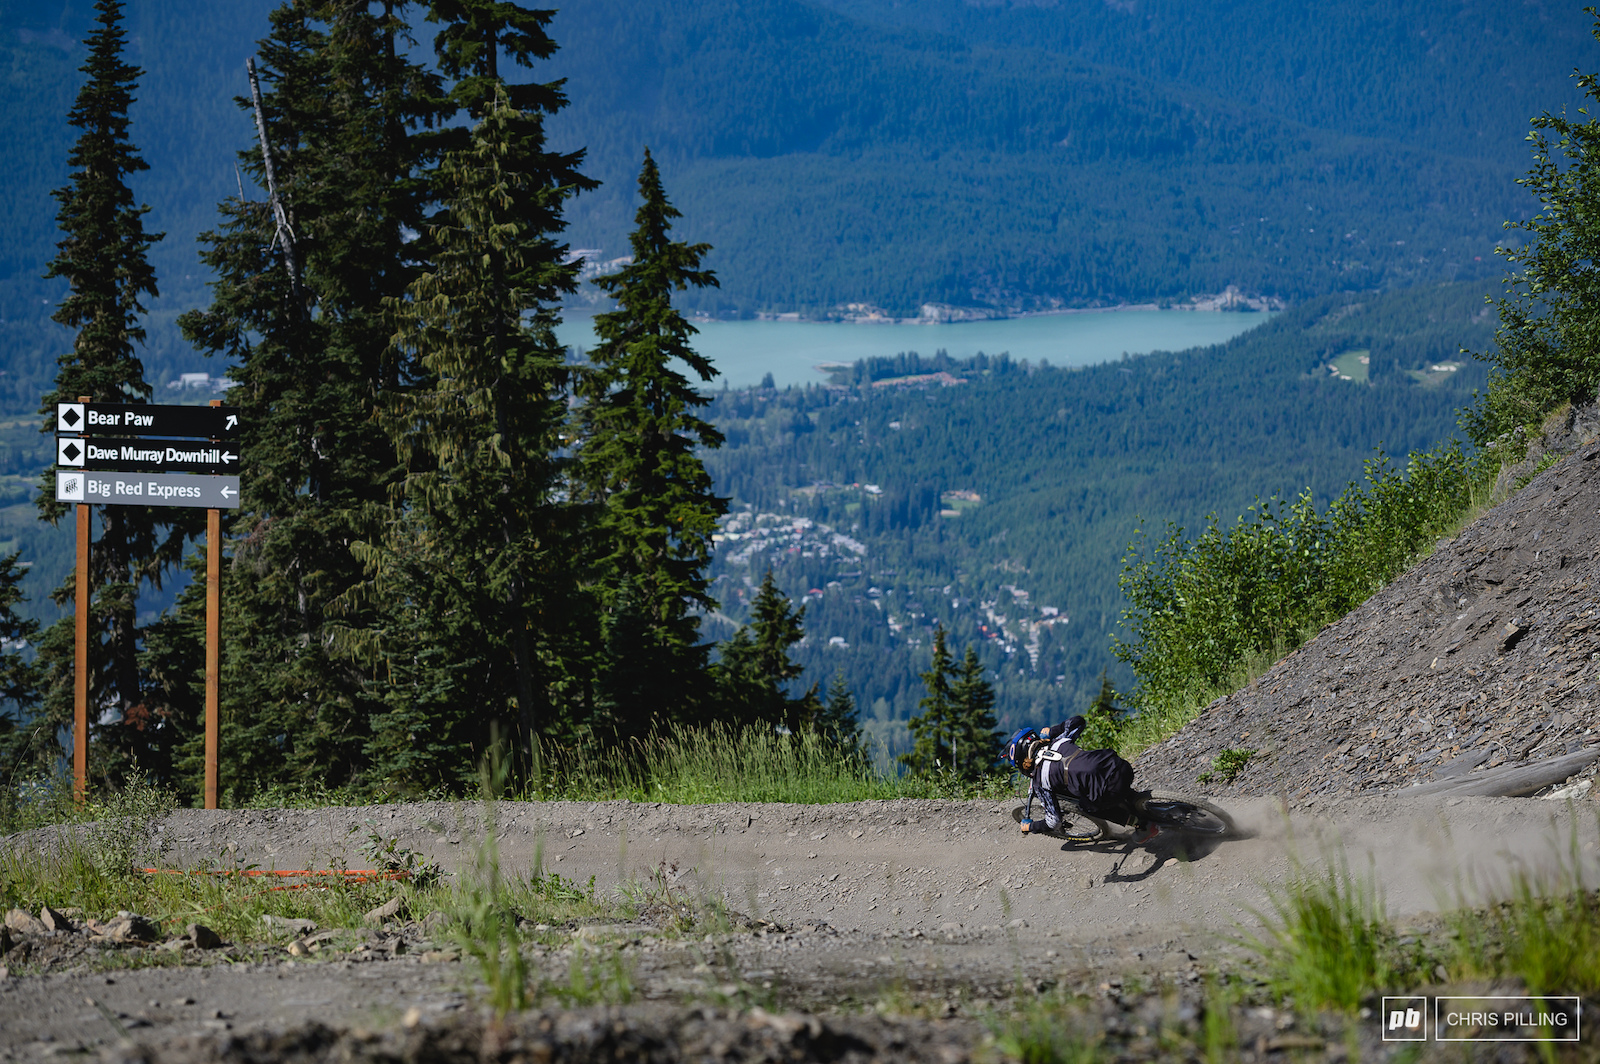 The views over Whistler valley can t be beat. No time to stop and take it in though